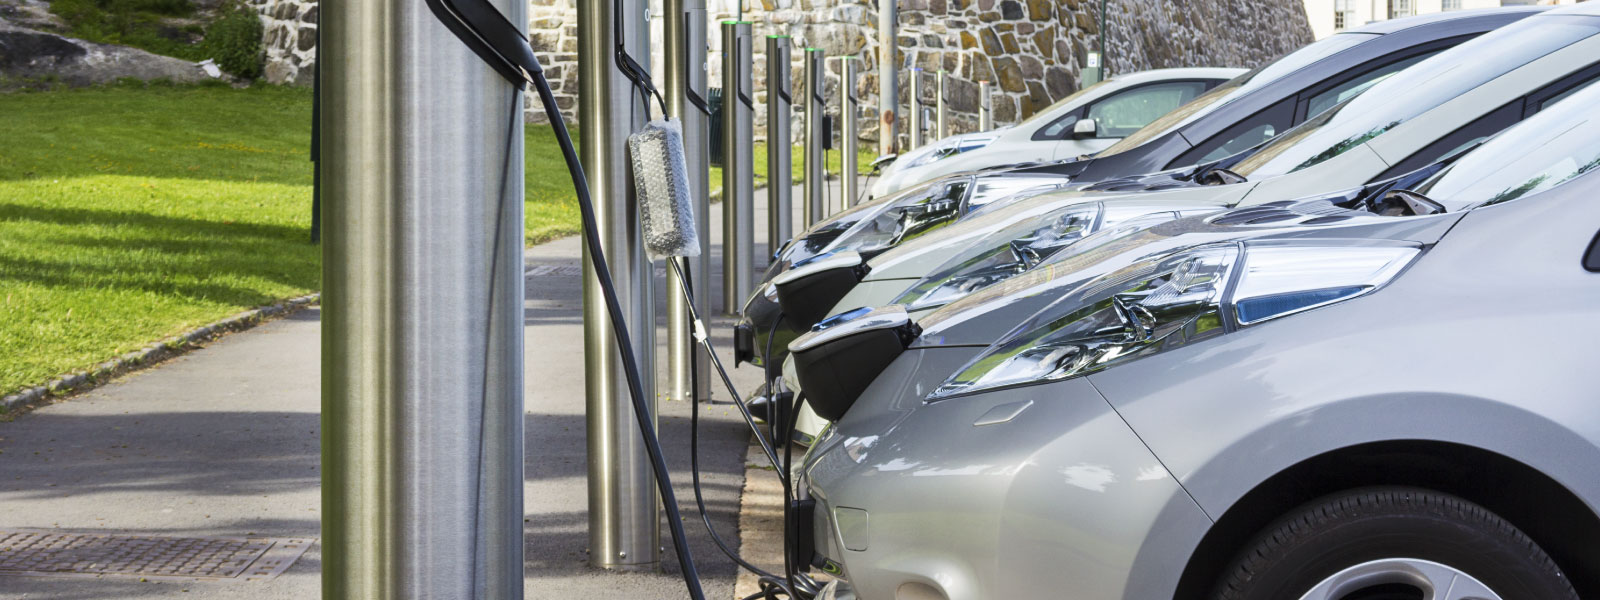 Electric vehicle charging points | Council